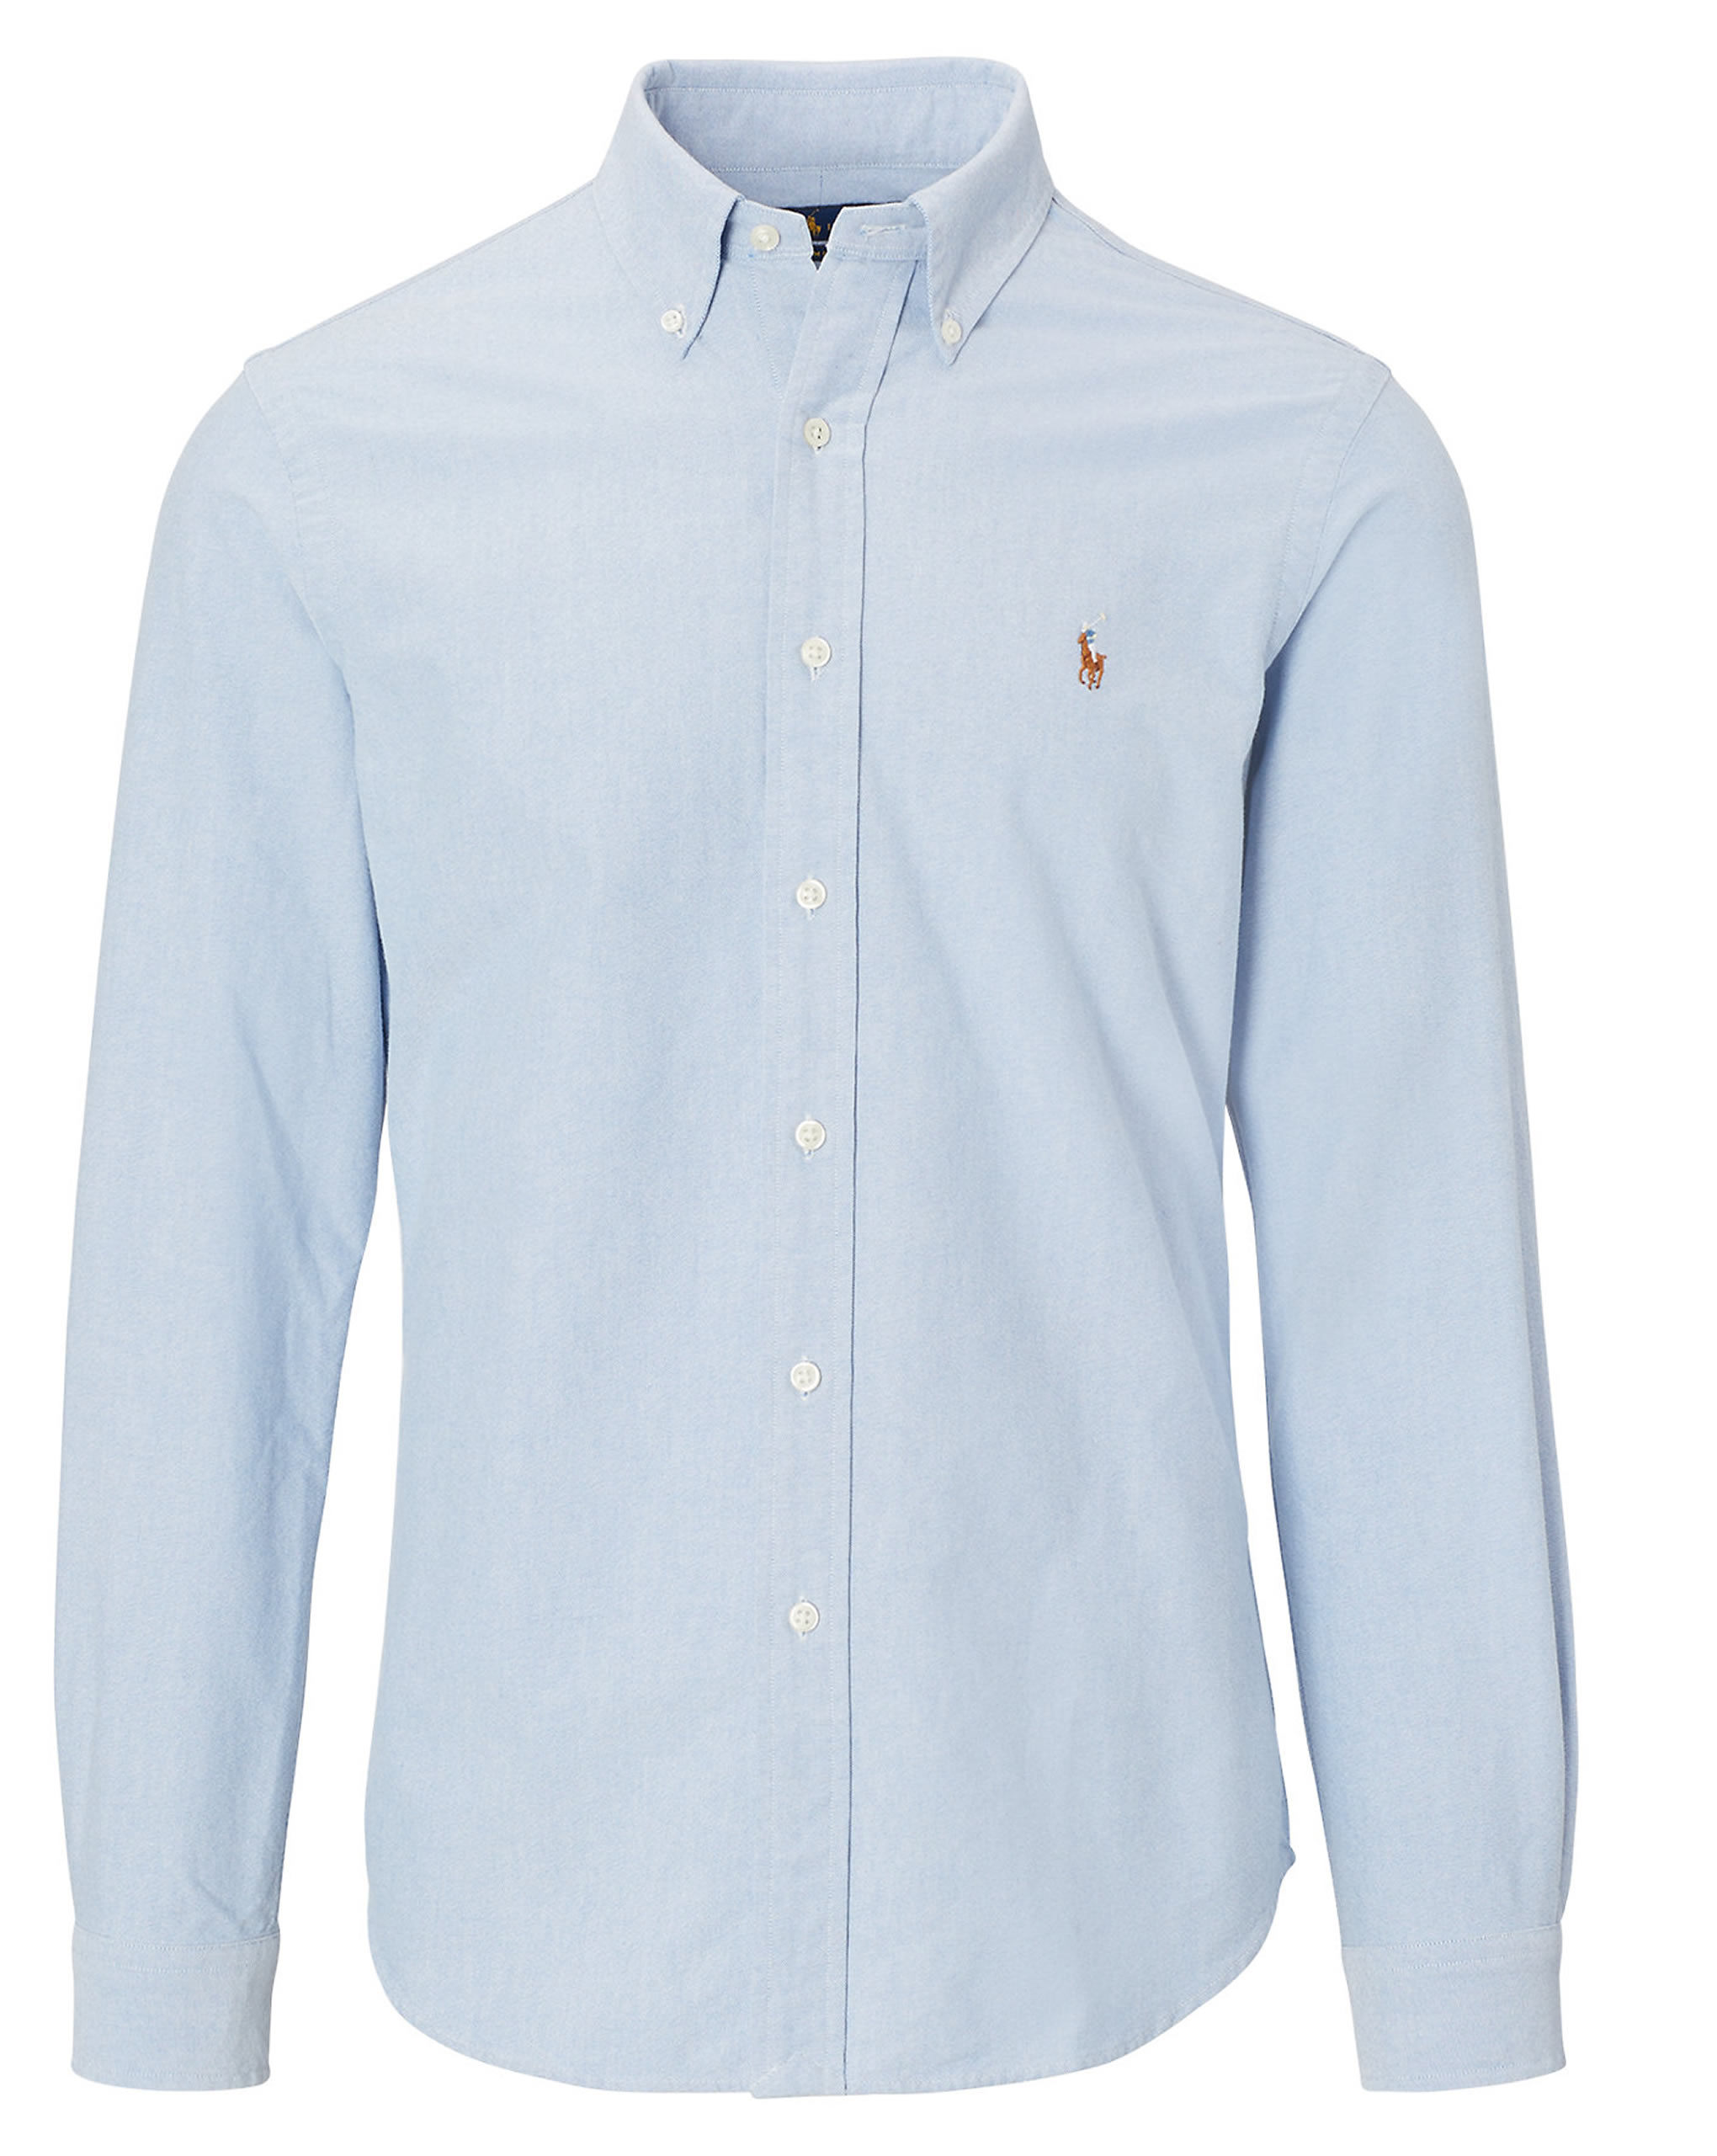 83aba9c740a5 Ralph Lauren Casual Oxford Shirt. Custom Fit in Blue